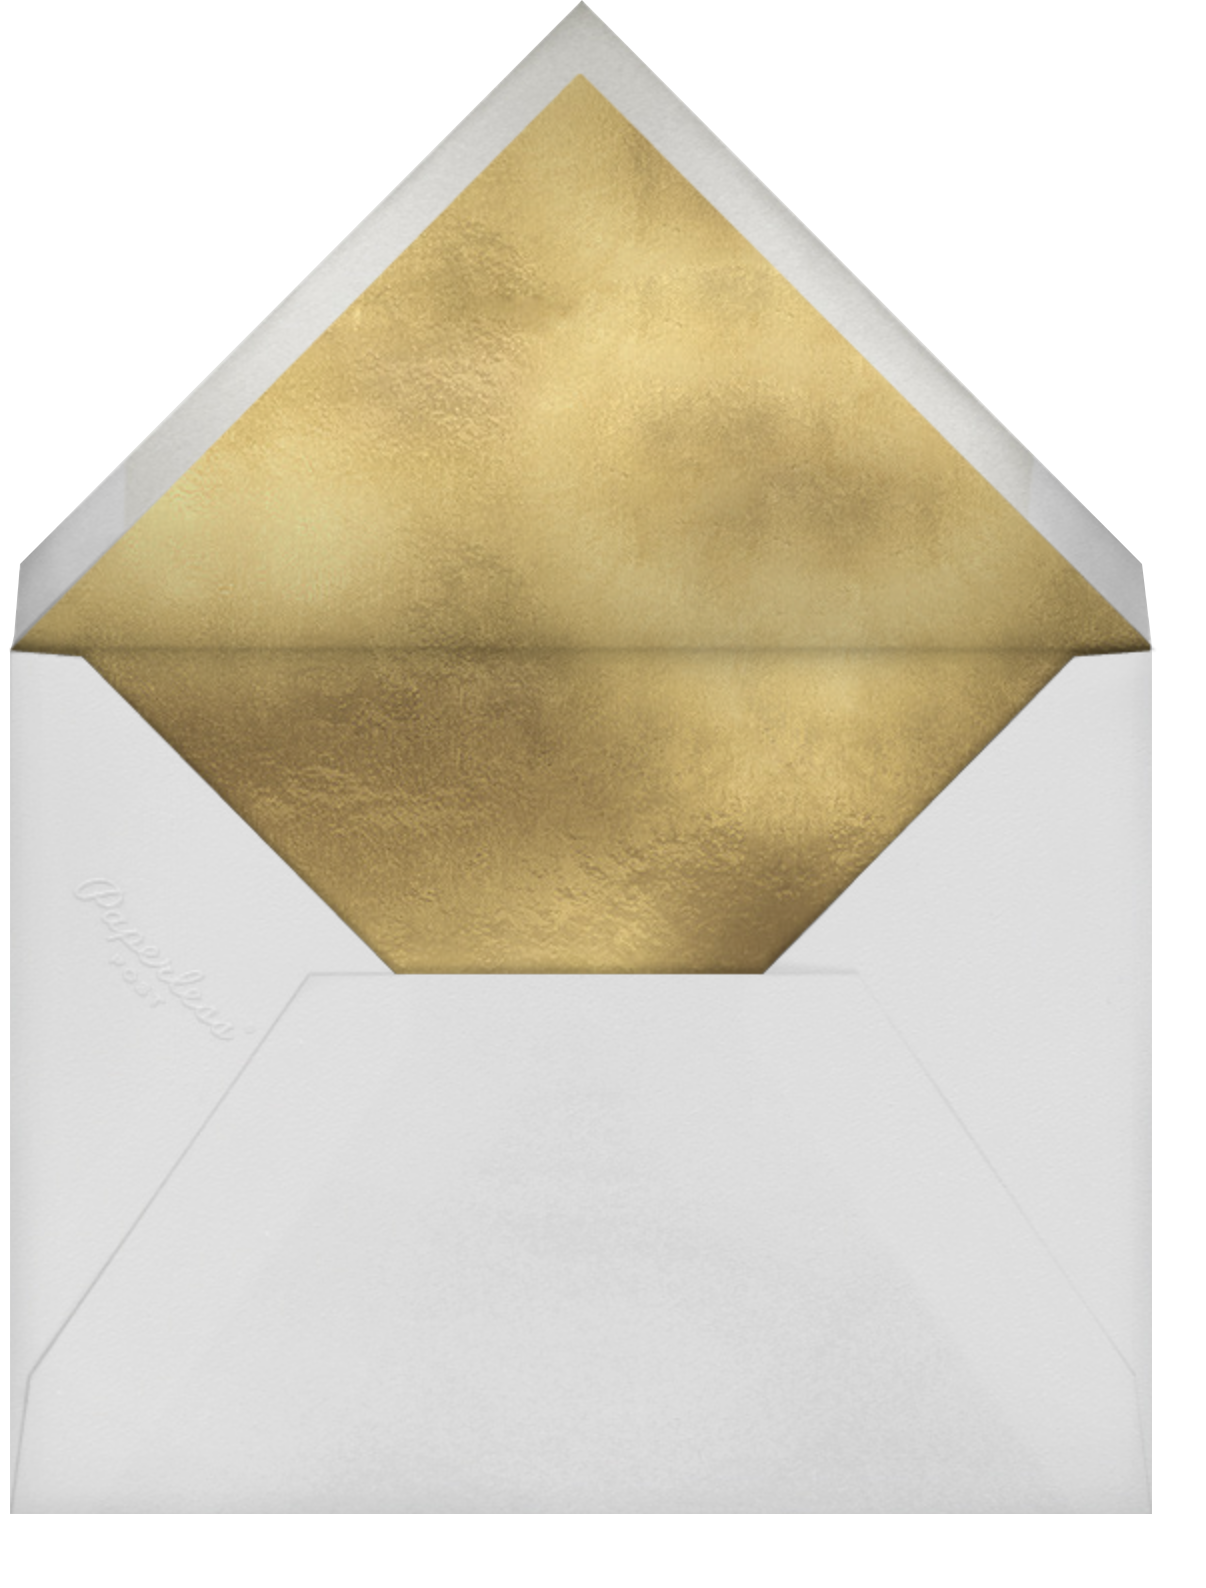 Gold Unikko - White - Marimekko - General entertaining - envelope back